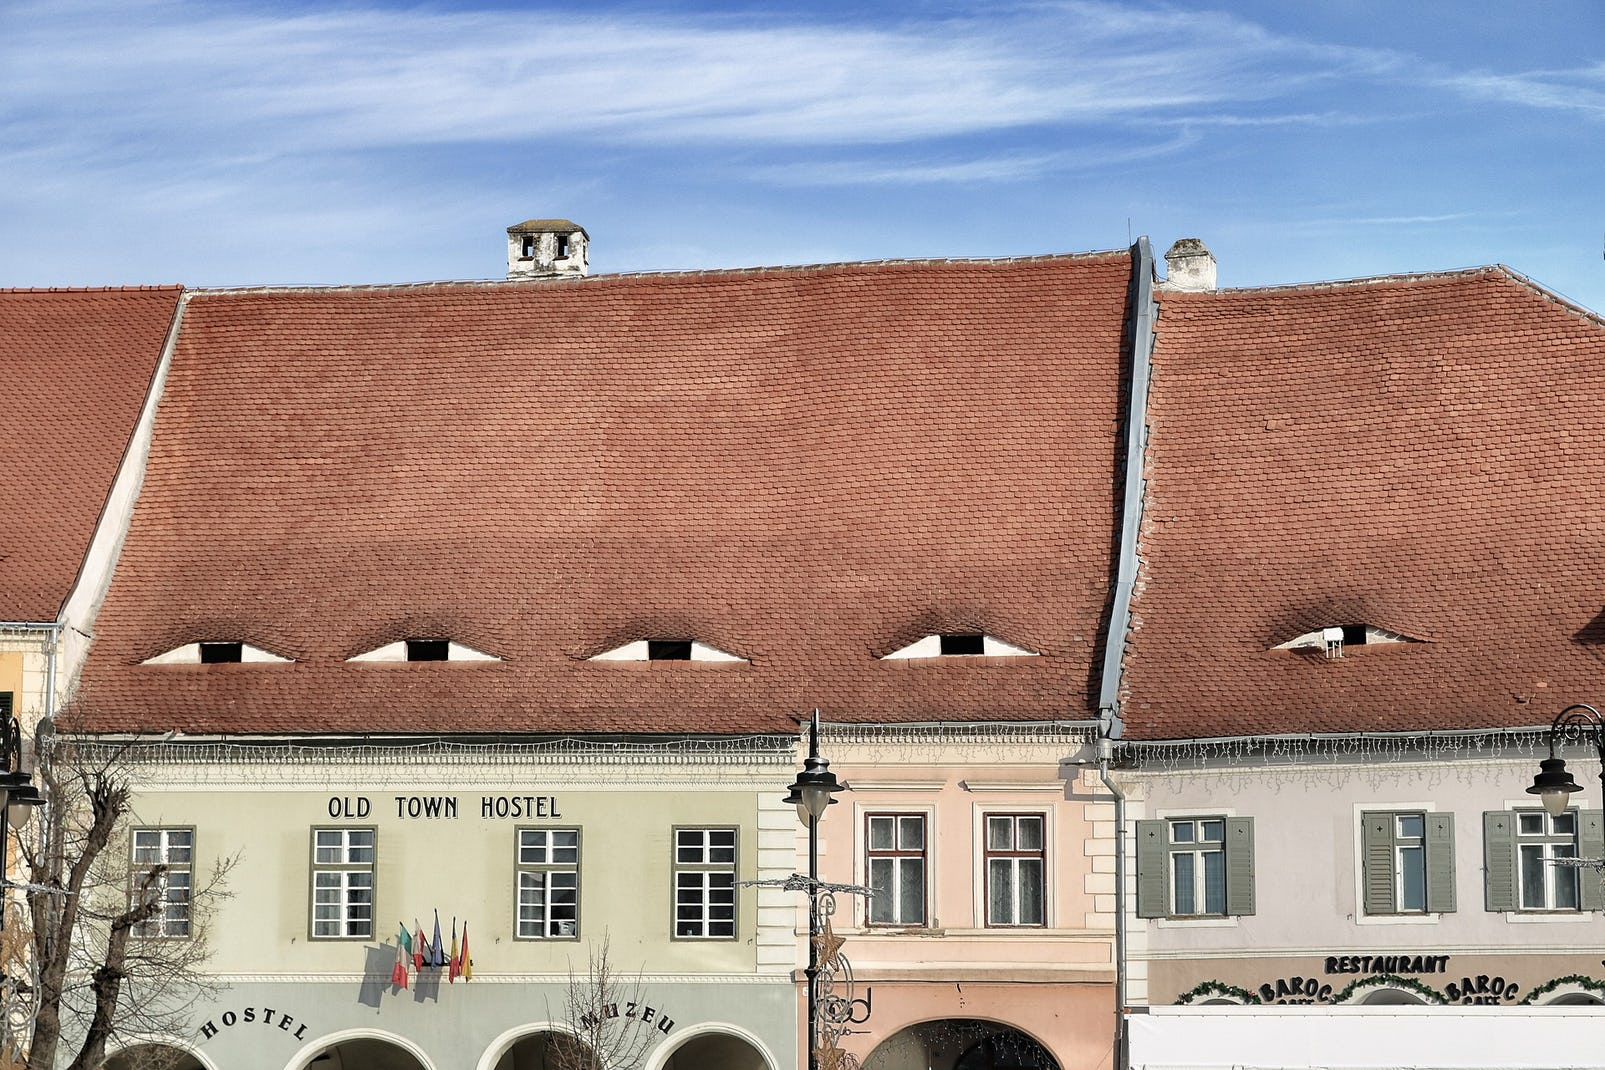 Hause with specific architecture from Sibiu